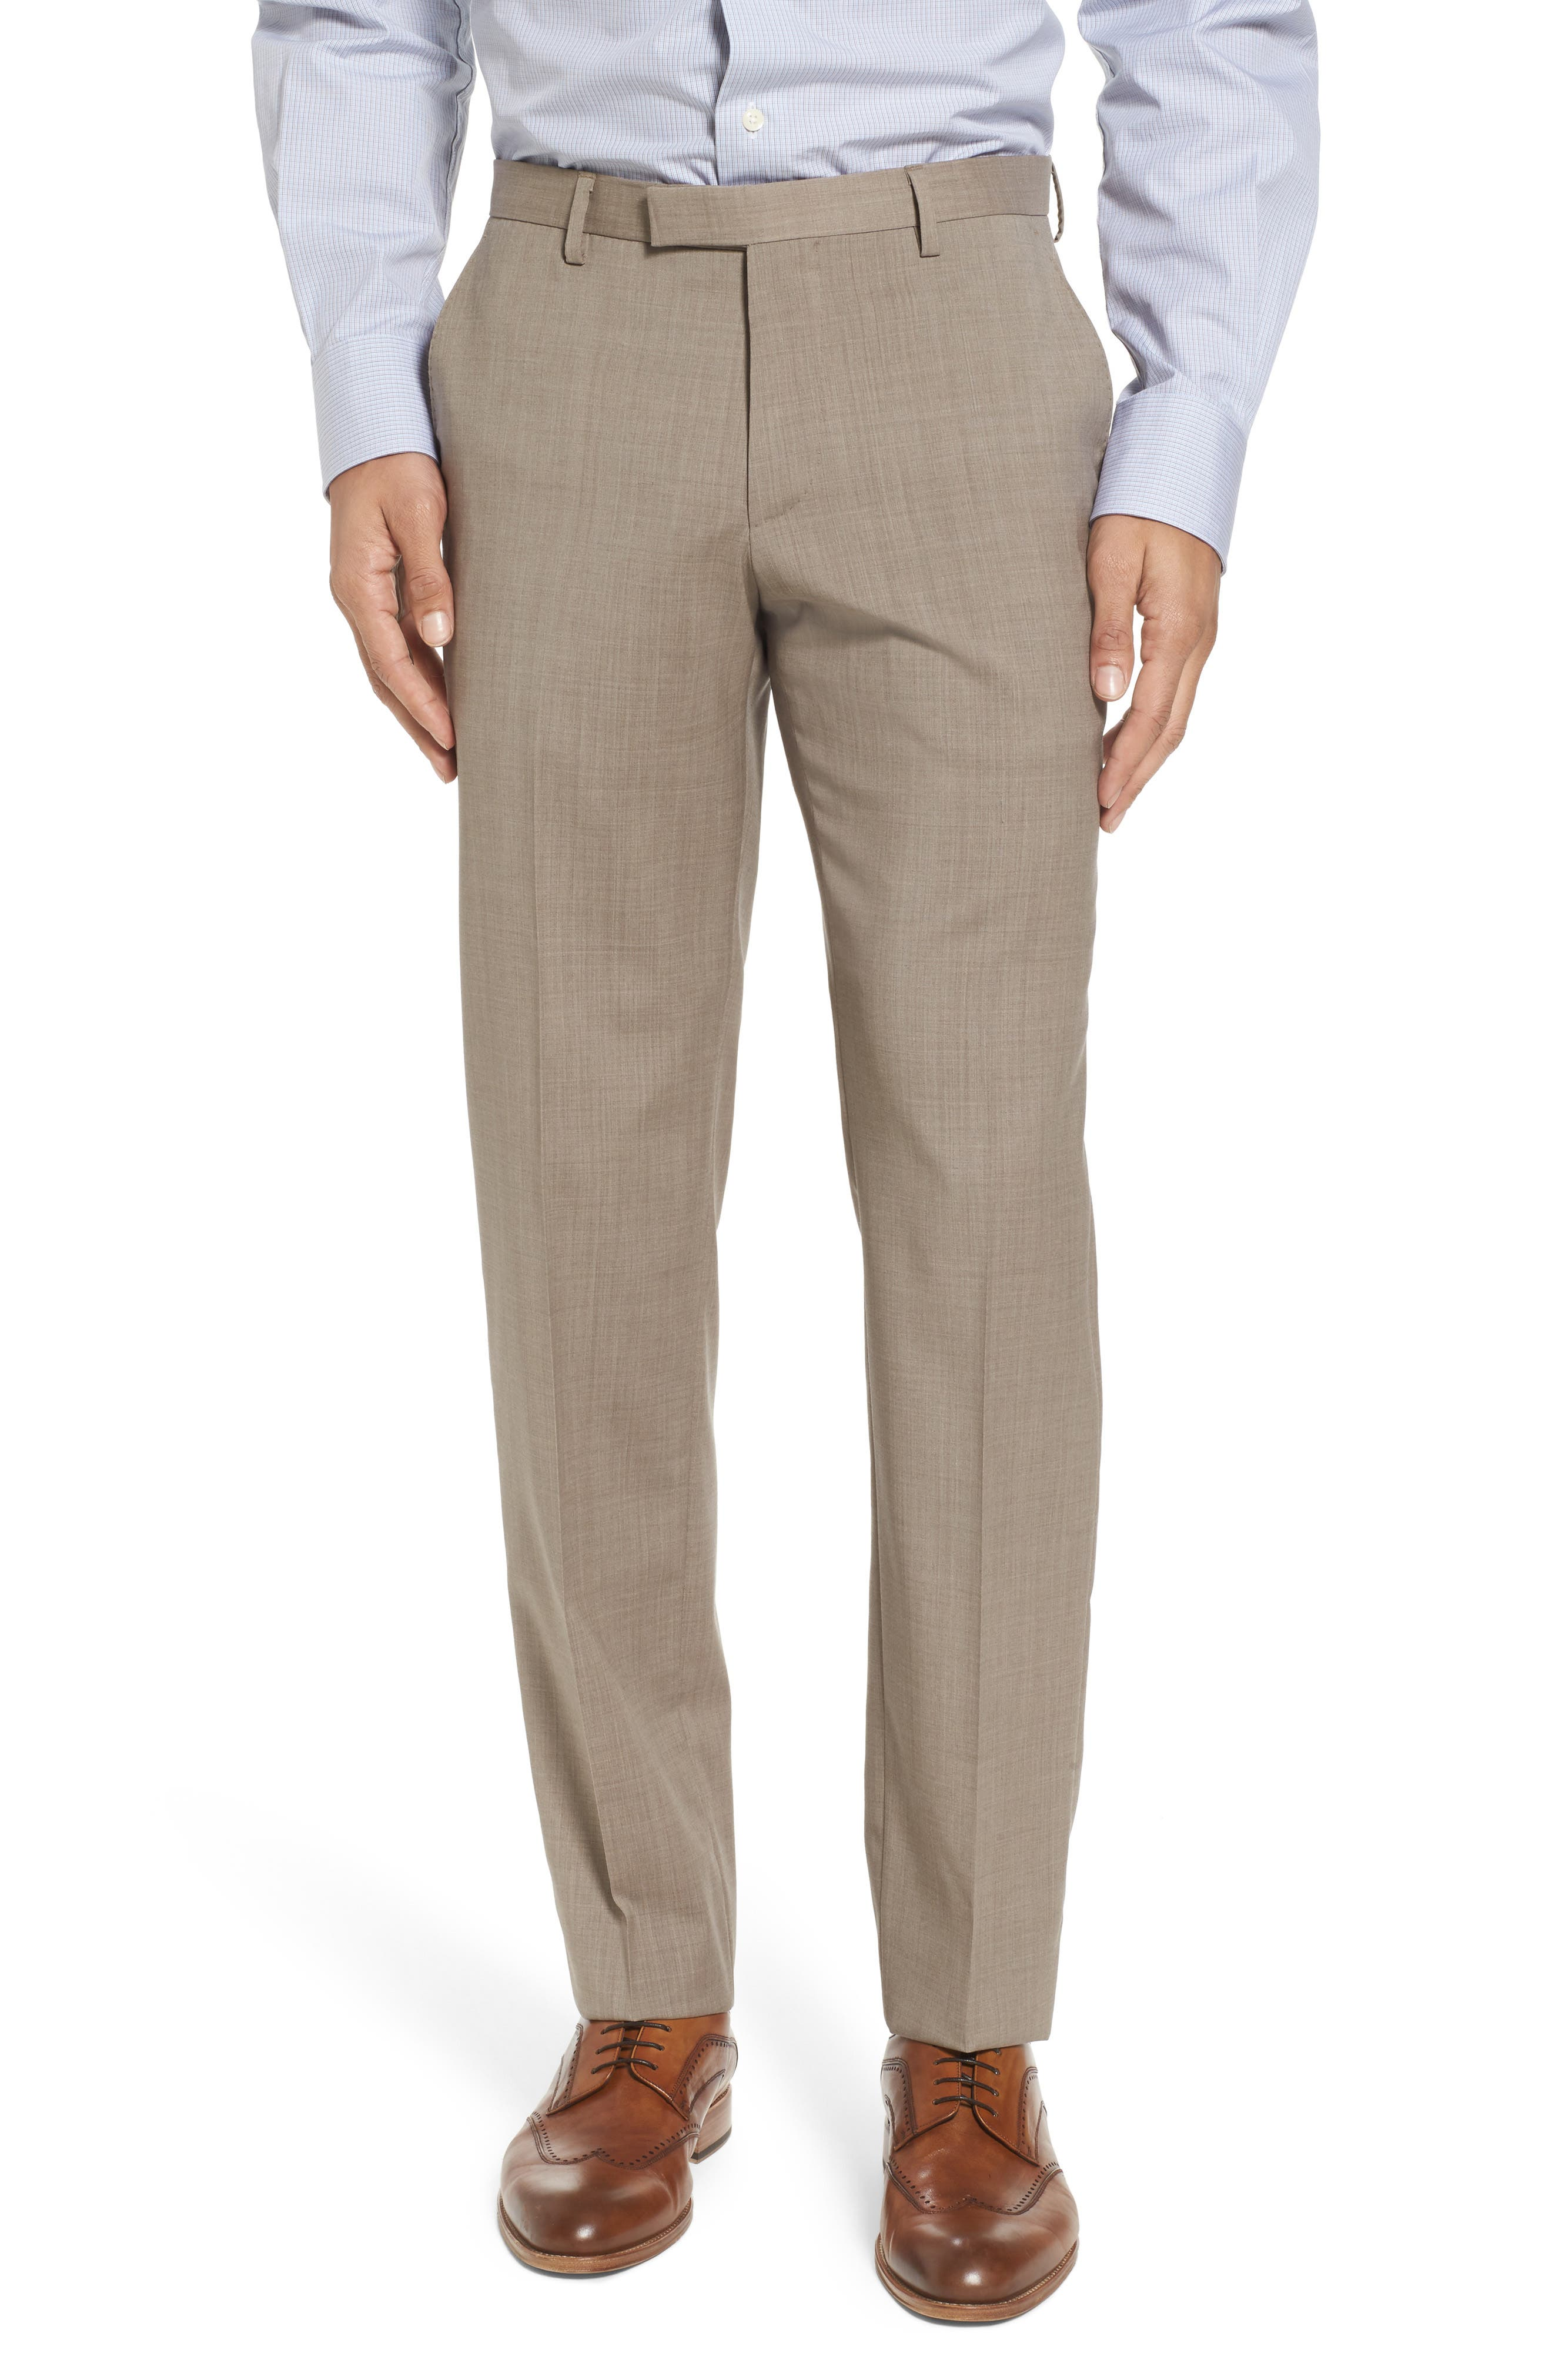 Johnstons/Lenon Classic Fit Solid Wool Suit,                             Alternate thumbnail 7, color,                             Medium Beige